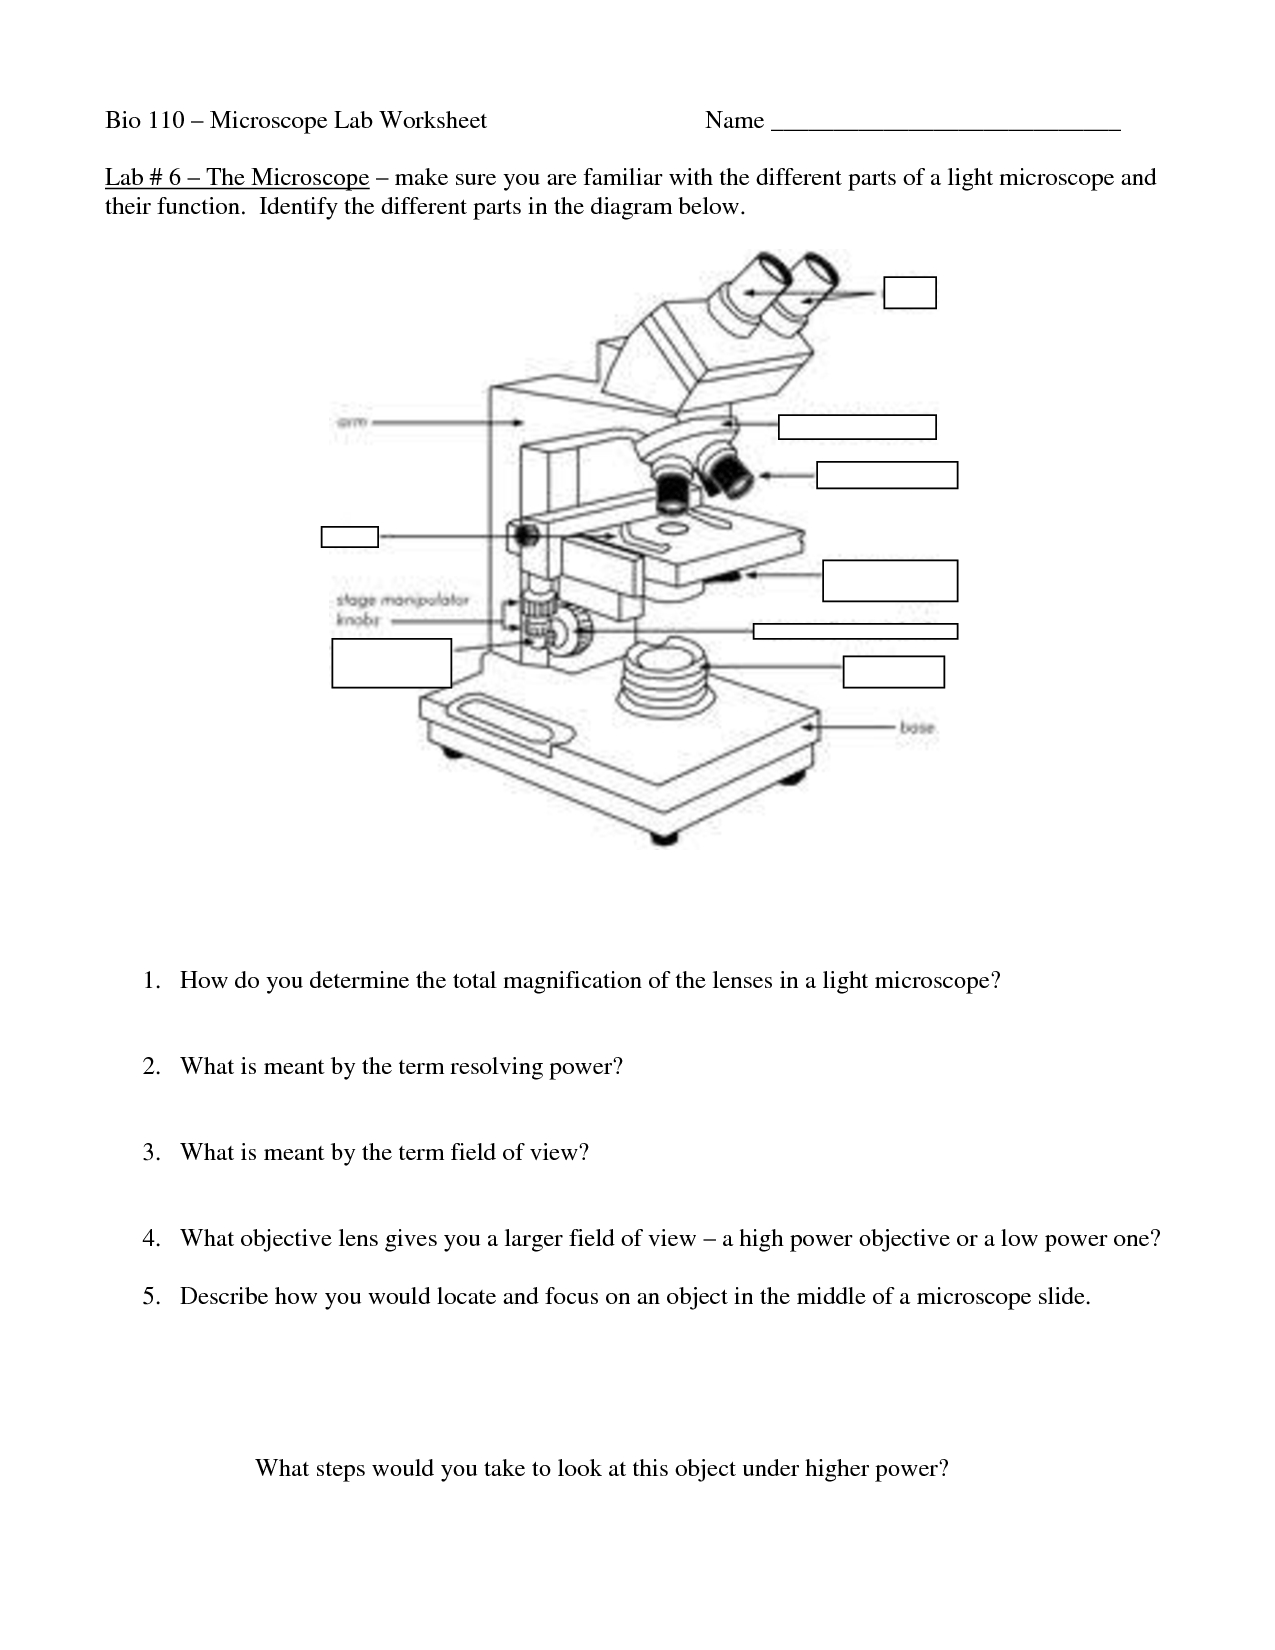 Microscope Matching Worksheet  Printable Worksheets And